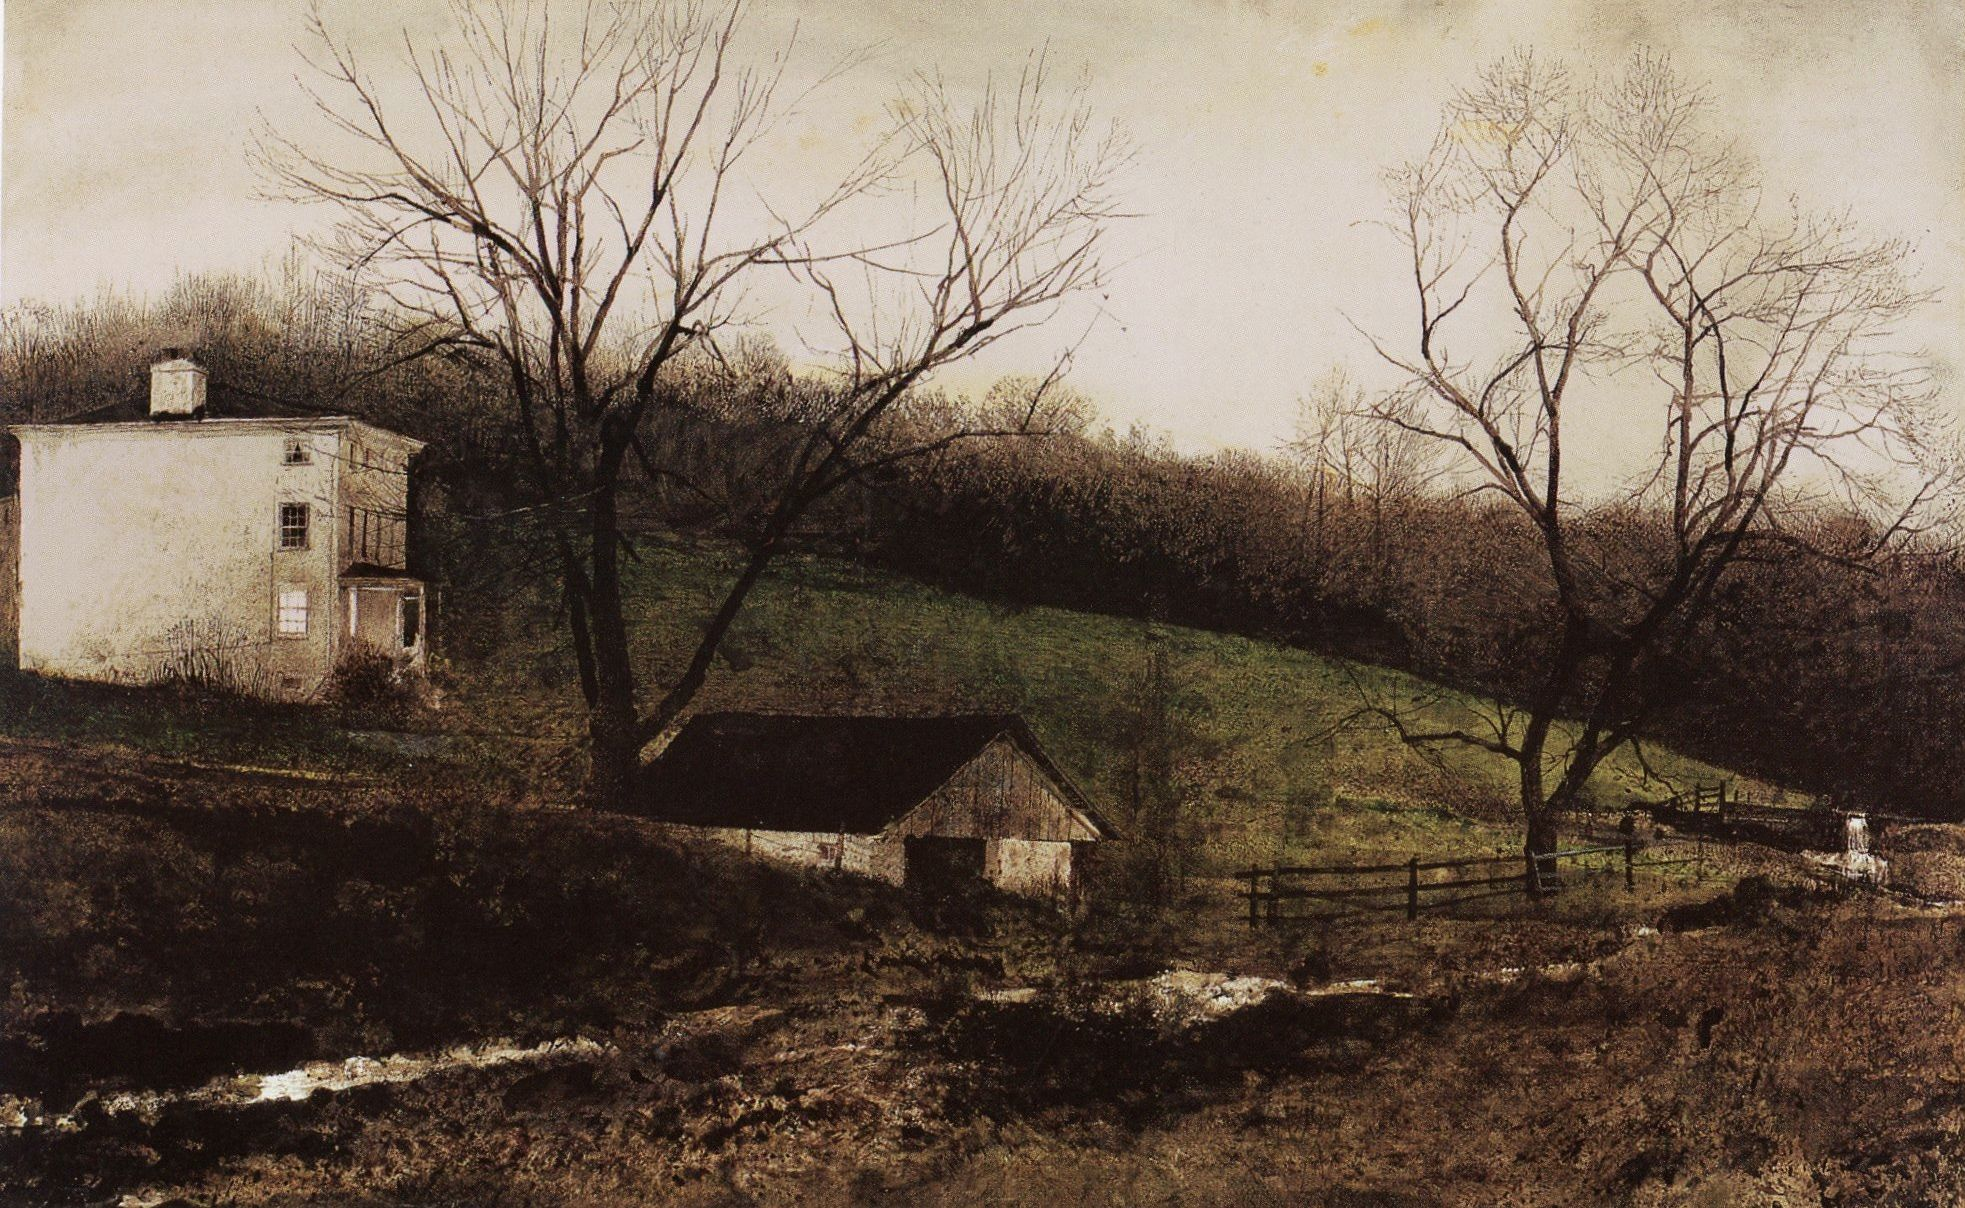 Andrew wyeth chadds ford gallery Chadds Ford Gallery - Around the Corner by Andrew Wyeth Art